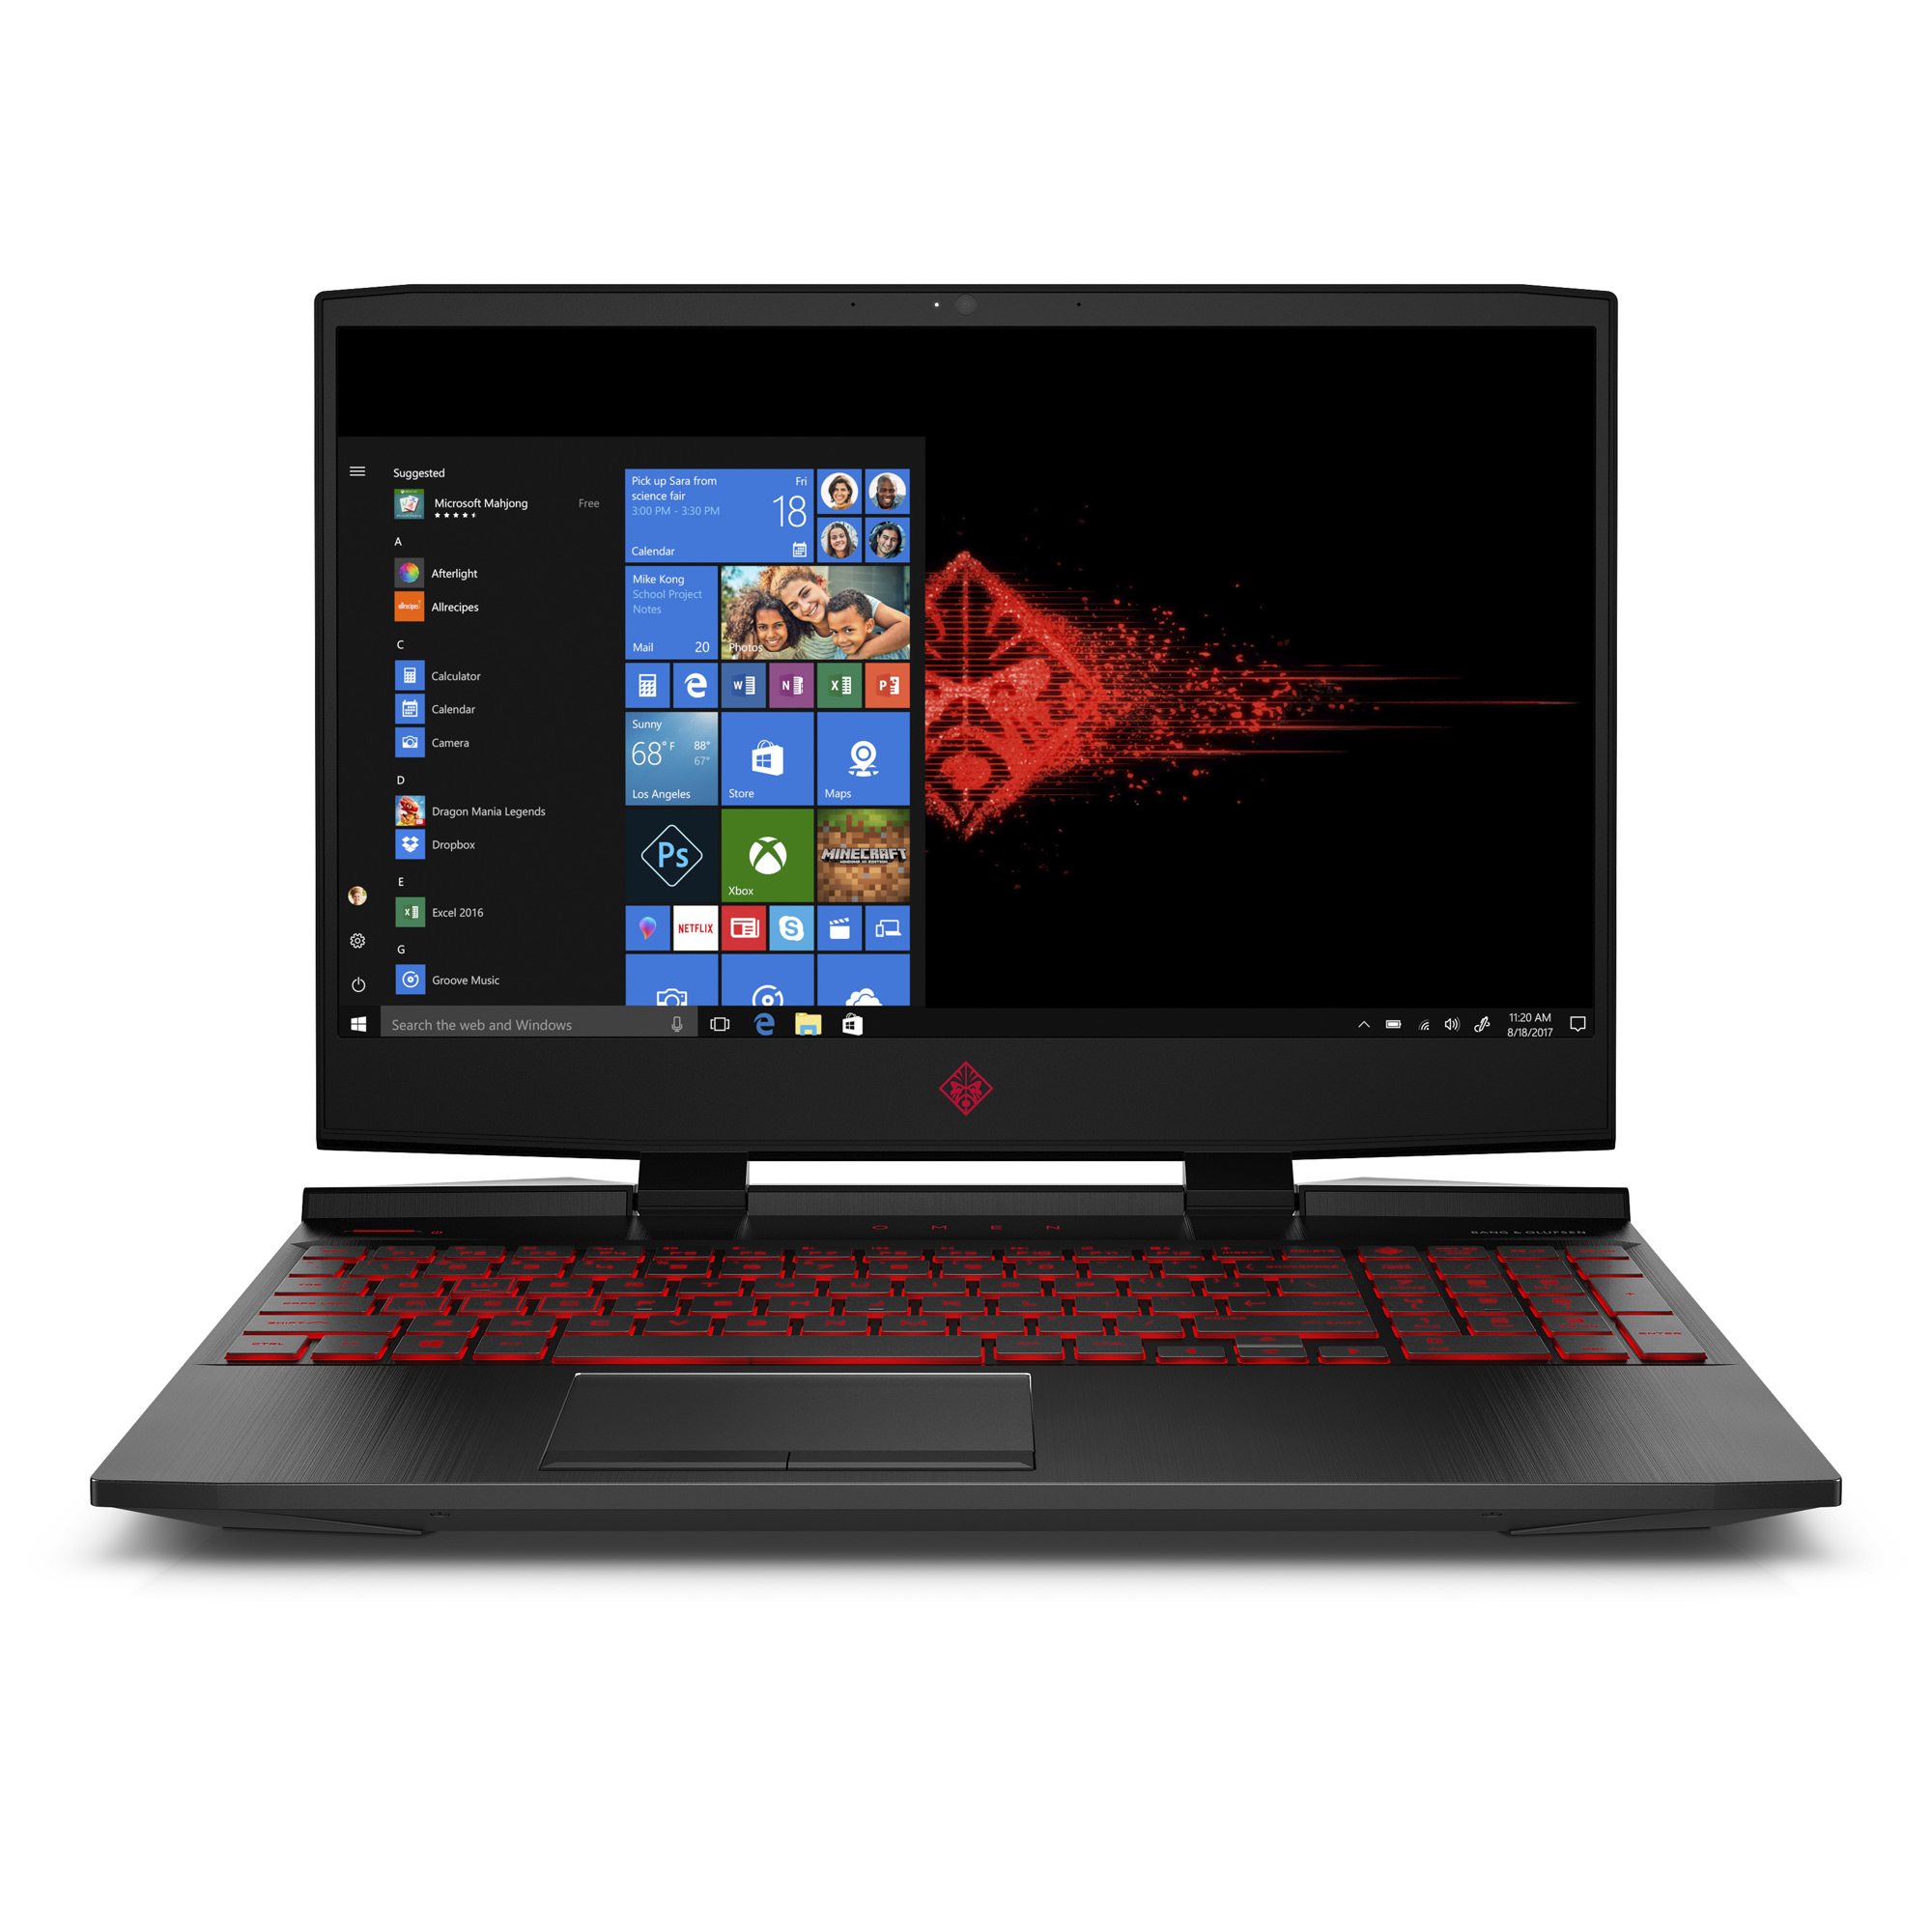 "HP OMEN 15-dc0020nr Gaming Laptop 15.6"", Intel Core i7-8750H, NVIDIA GeForce GTX 1050Ti 4GB, 1TB HDD + 128GB SSD, 12GB RAM, 3WL02UA#ABA"